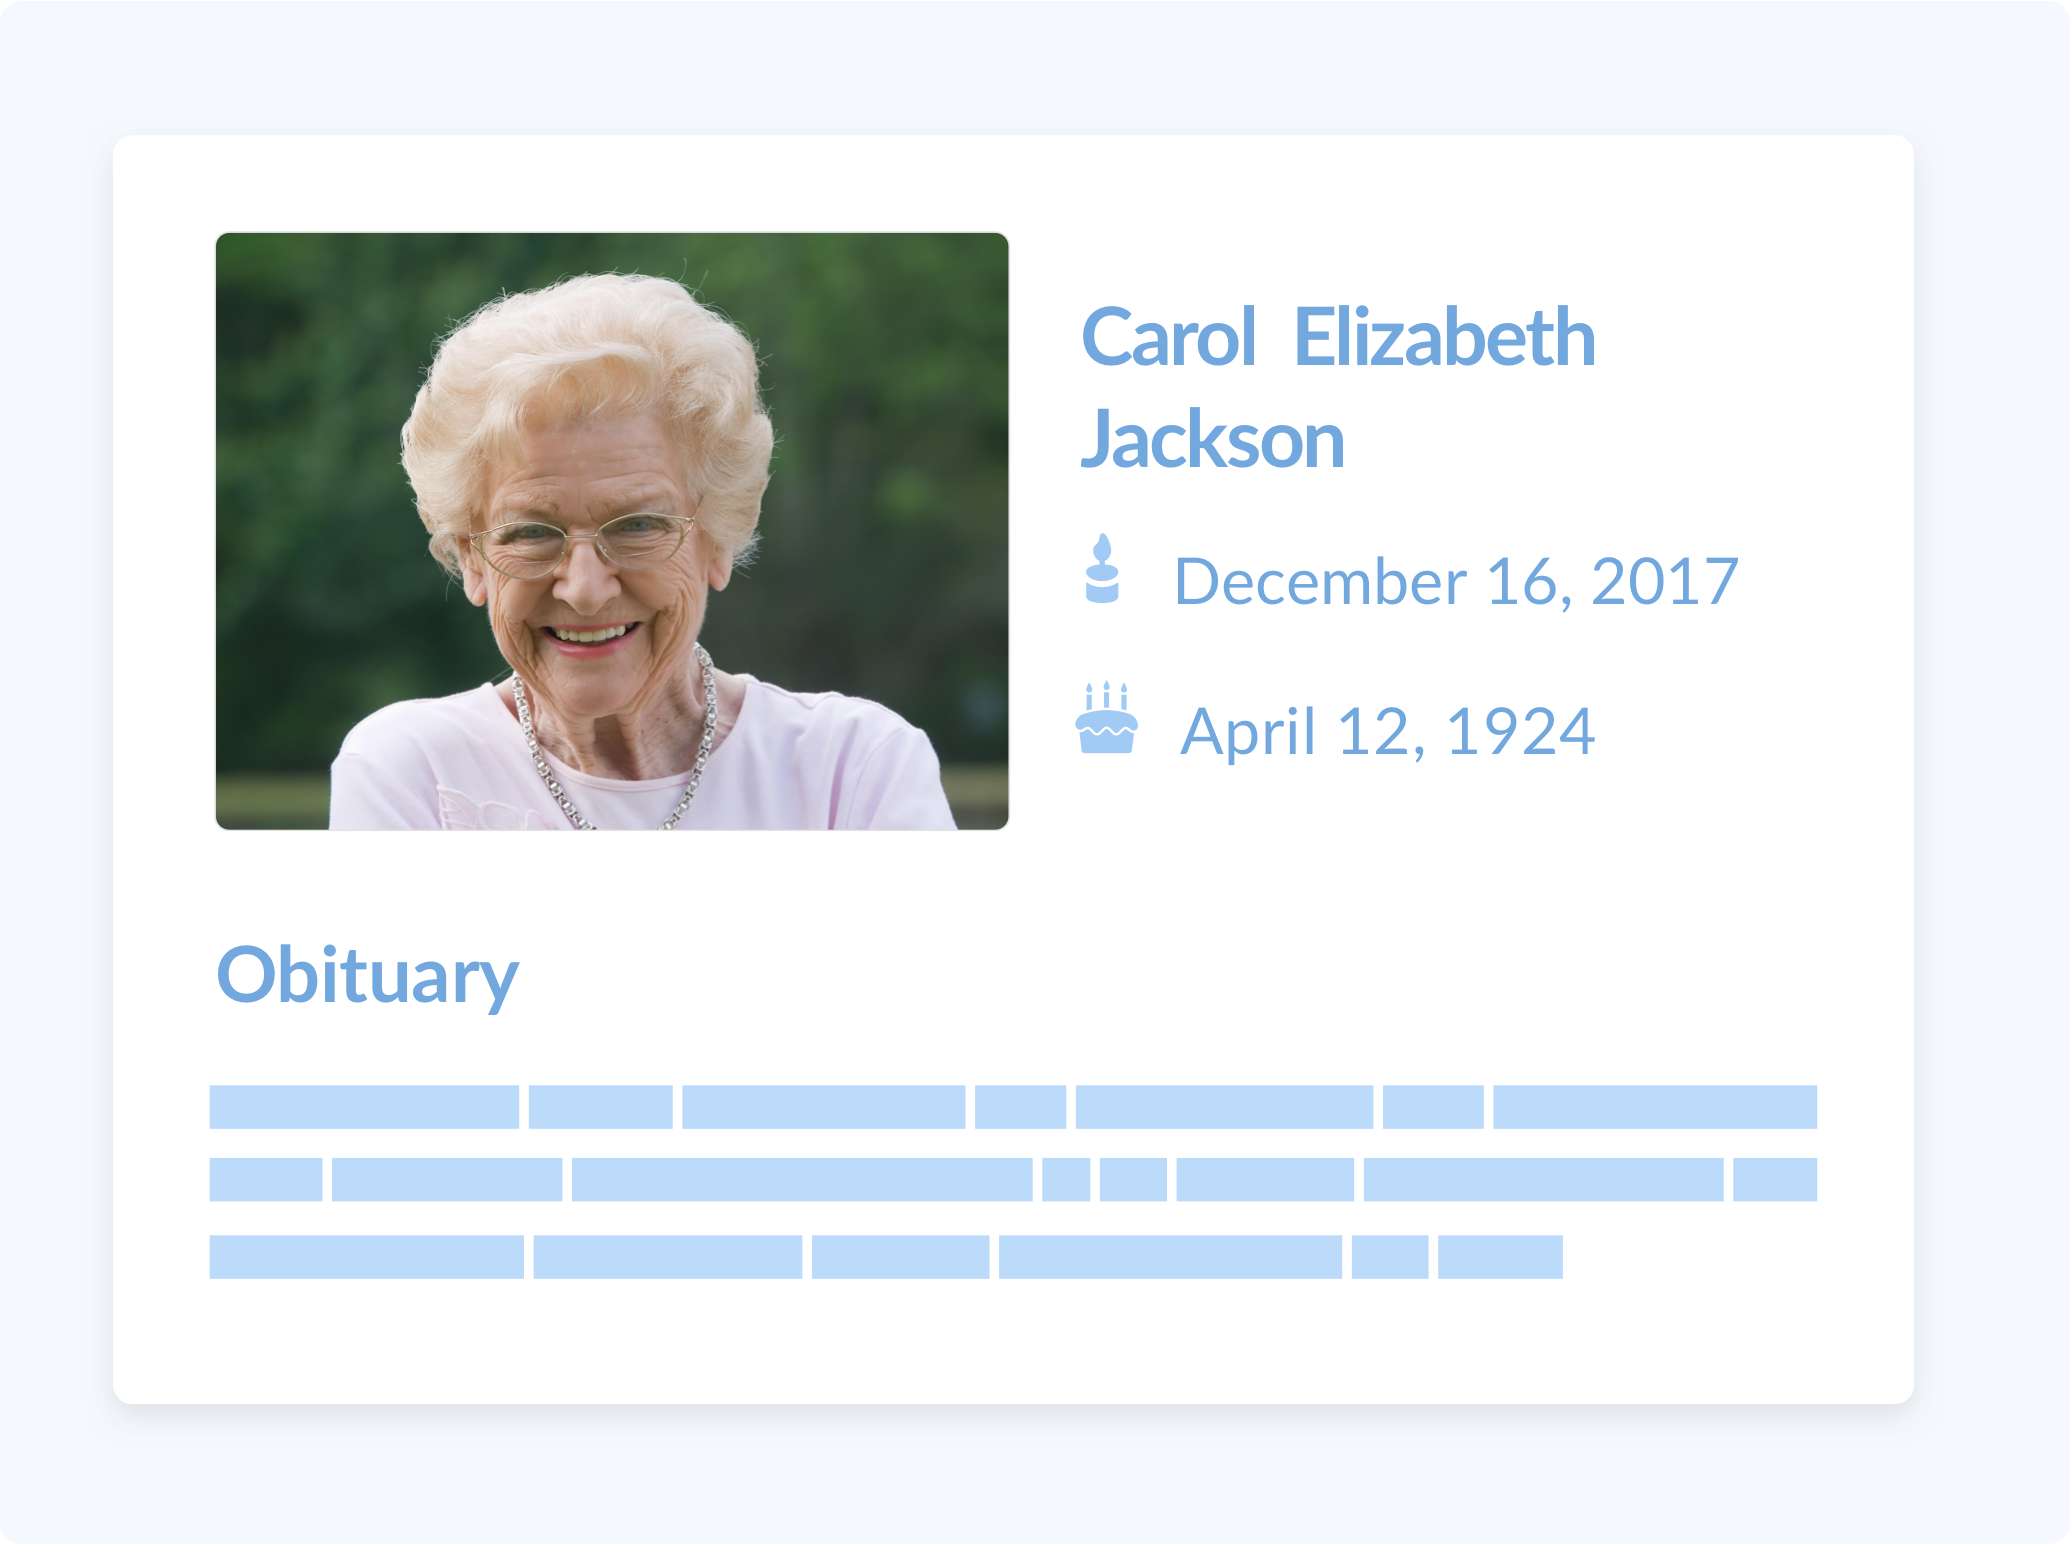 memorial preview image for tablet devices